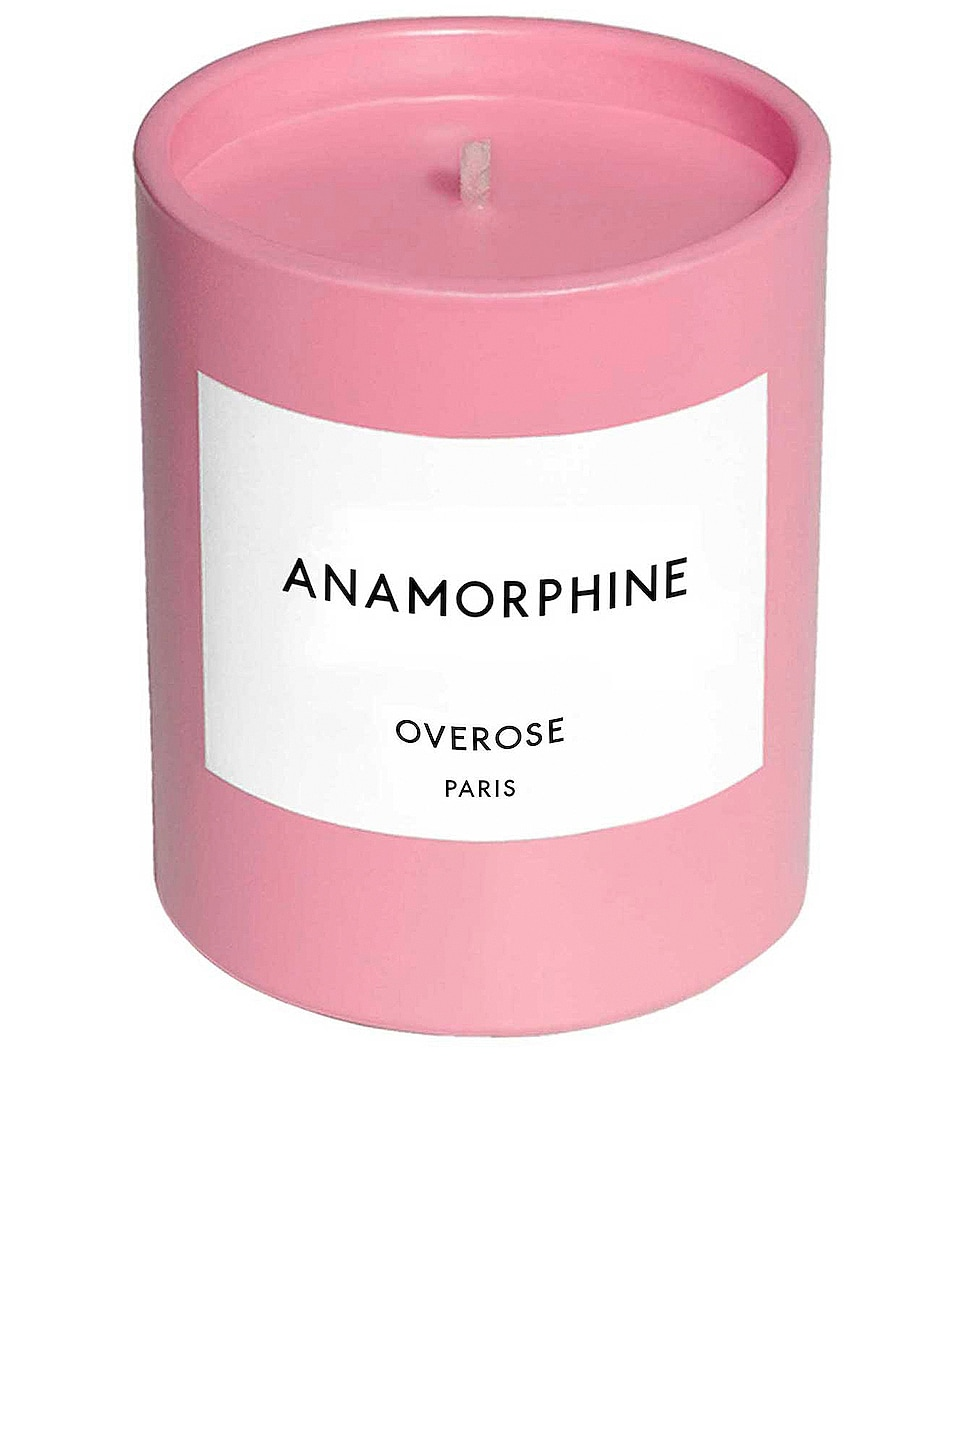 OVEROSE Anamorphine in Pink